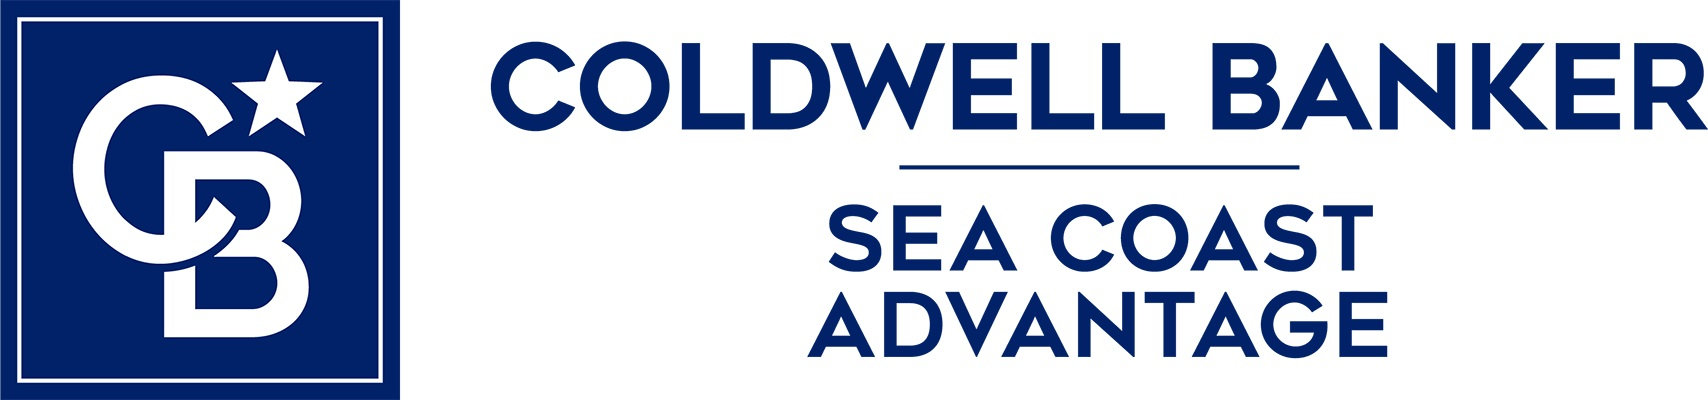 Candace Hulsey - Coldwell Banker Sea Coast Advantage Realty